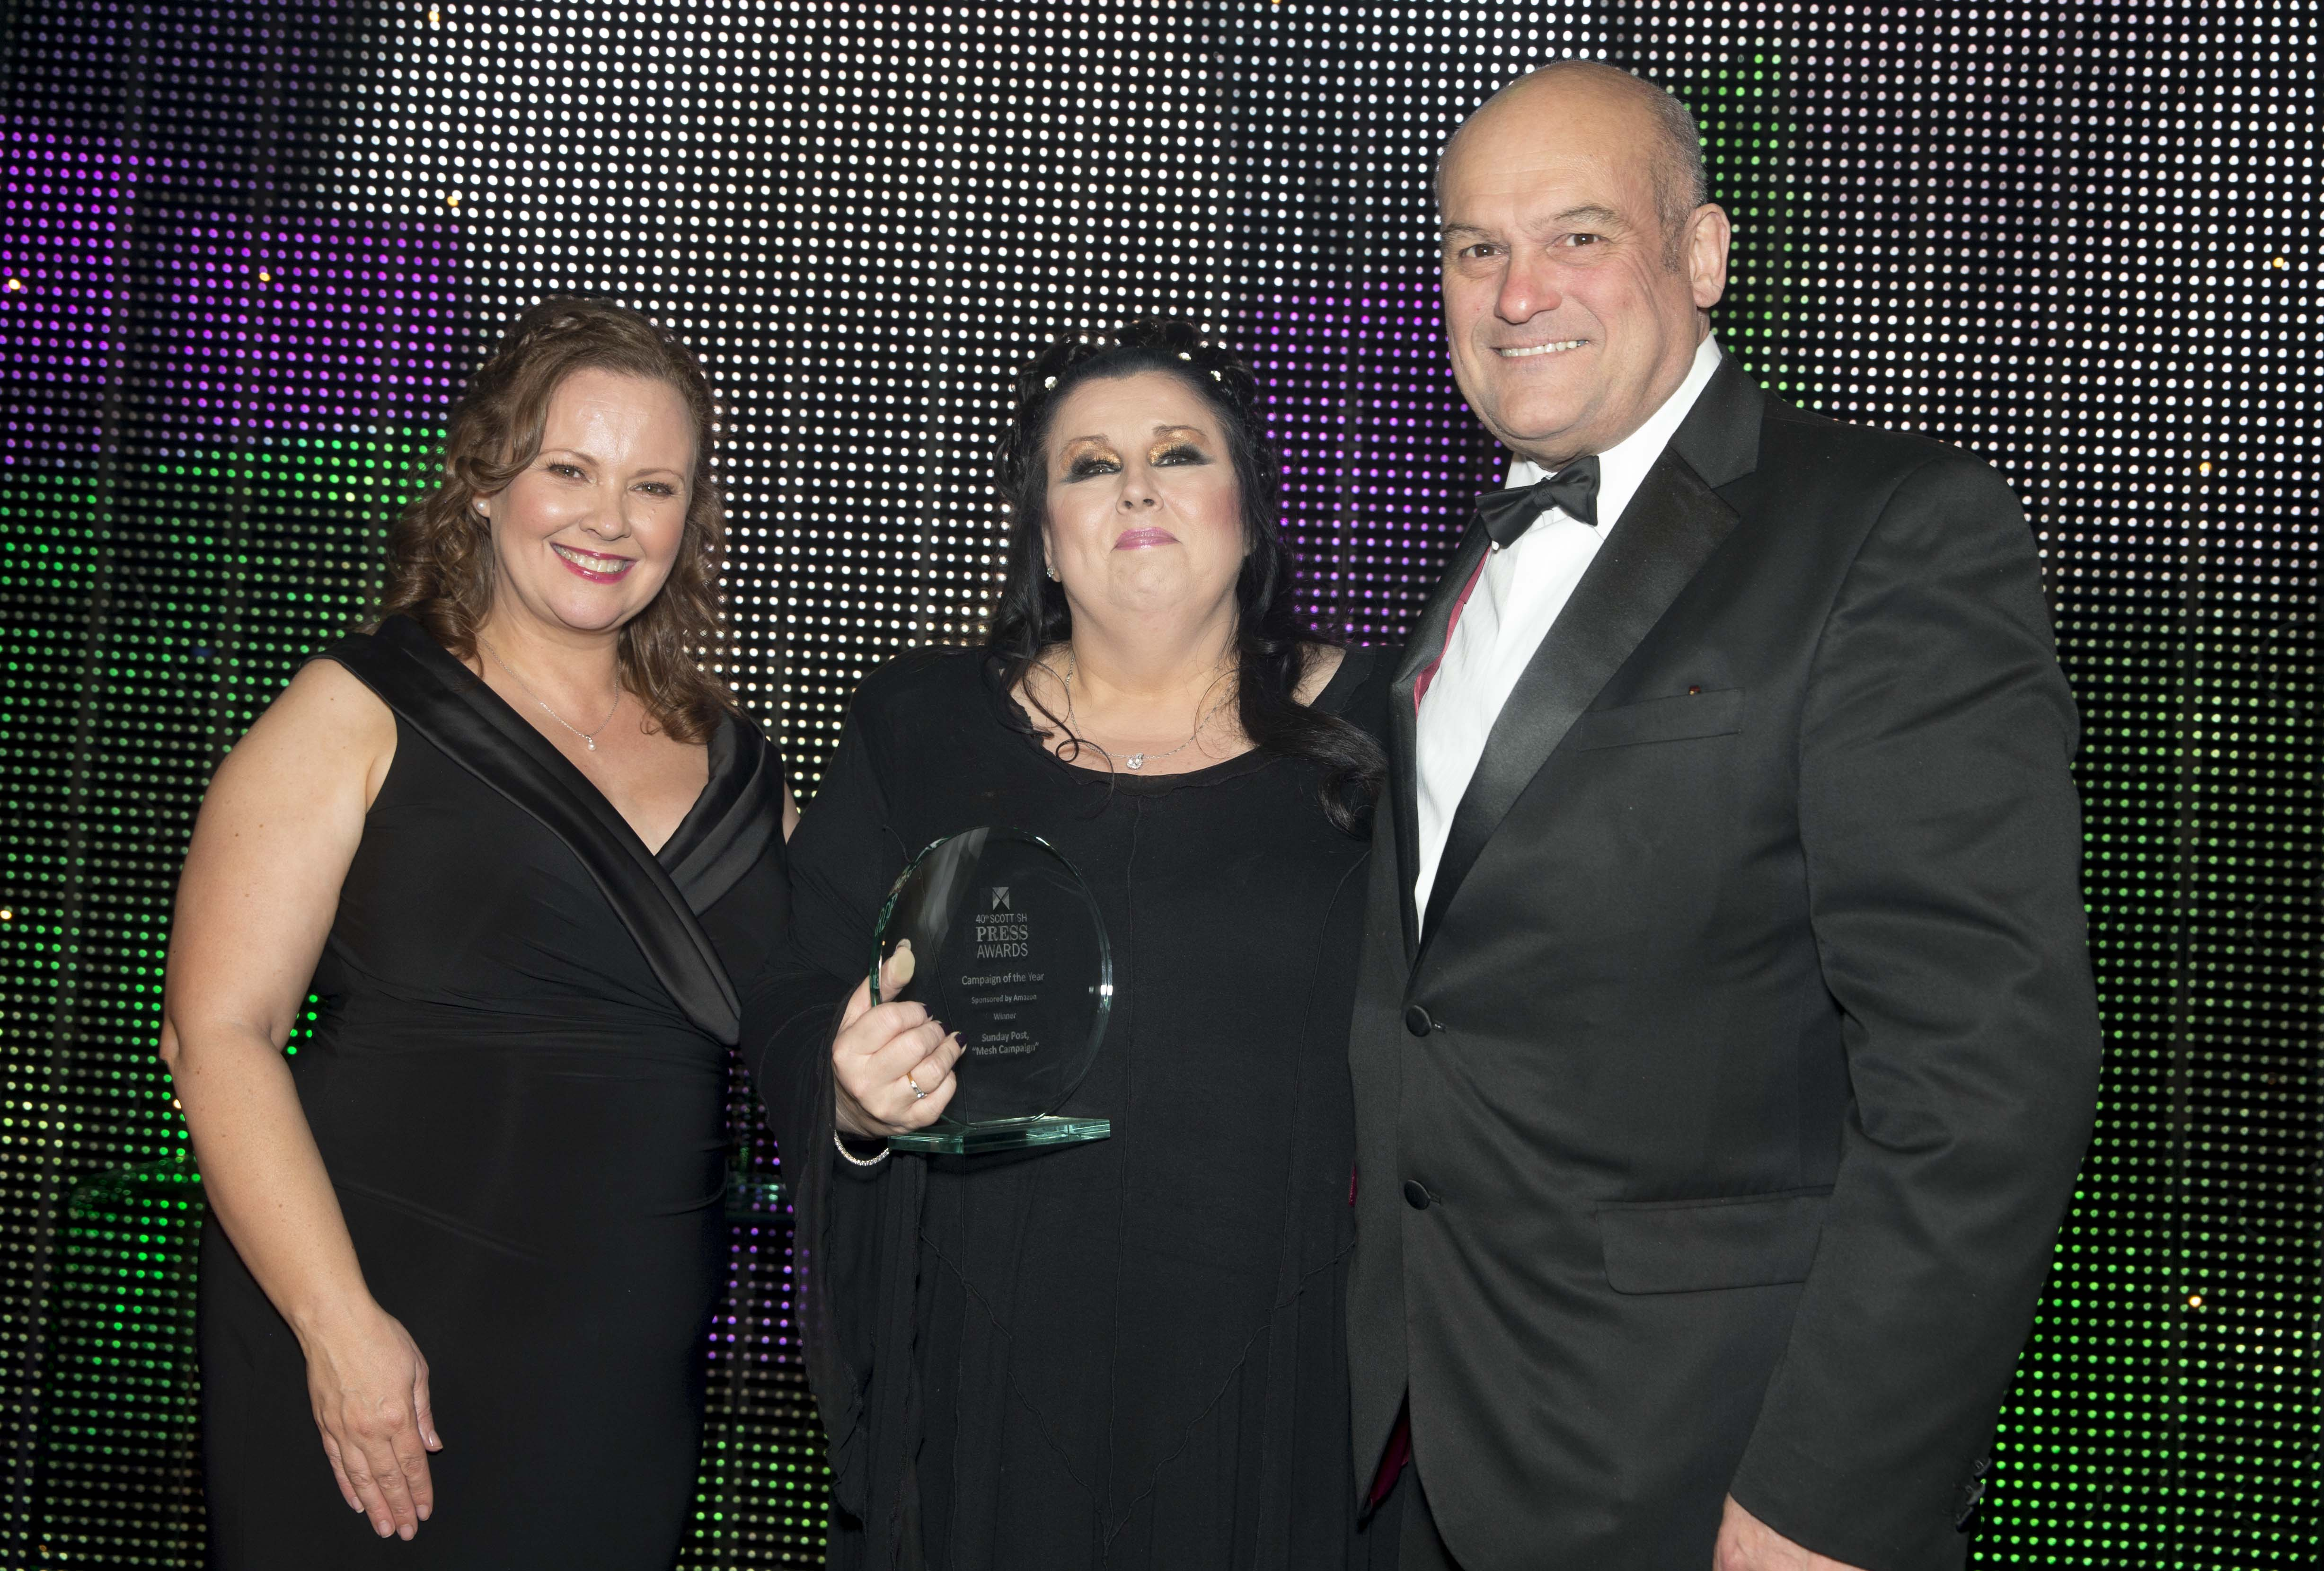 Marion Scott (centre) with her award for Campaign of the Year